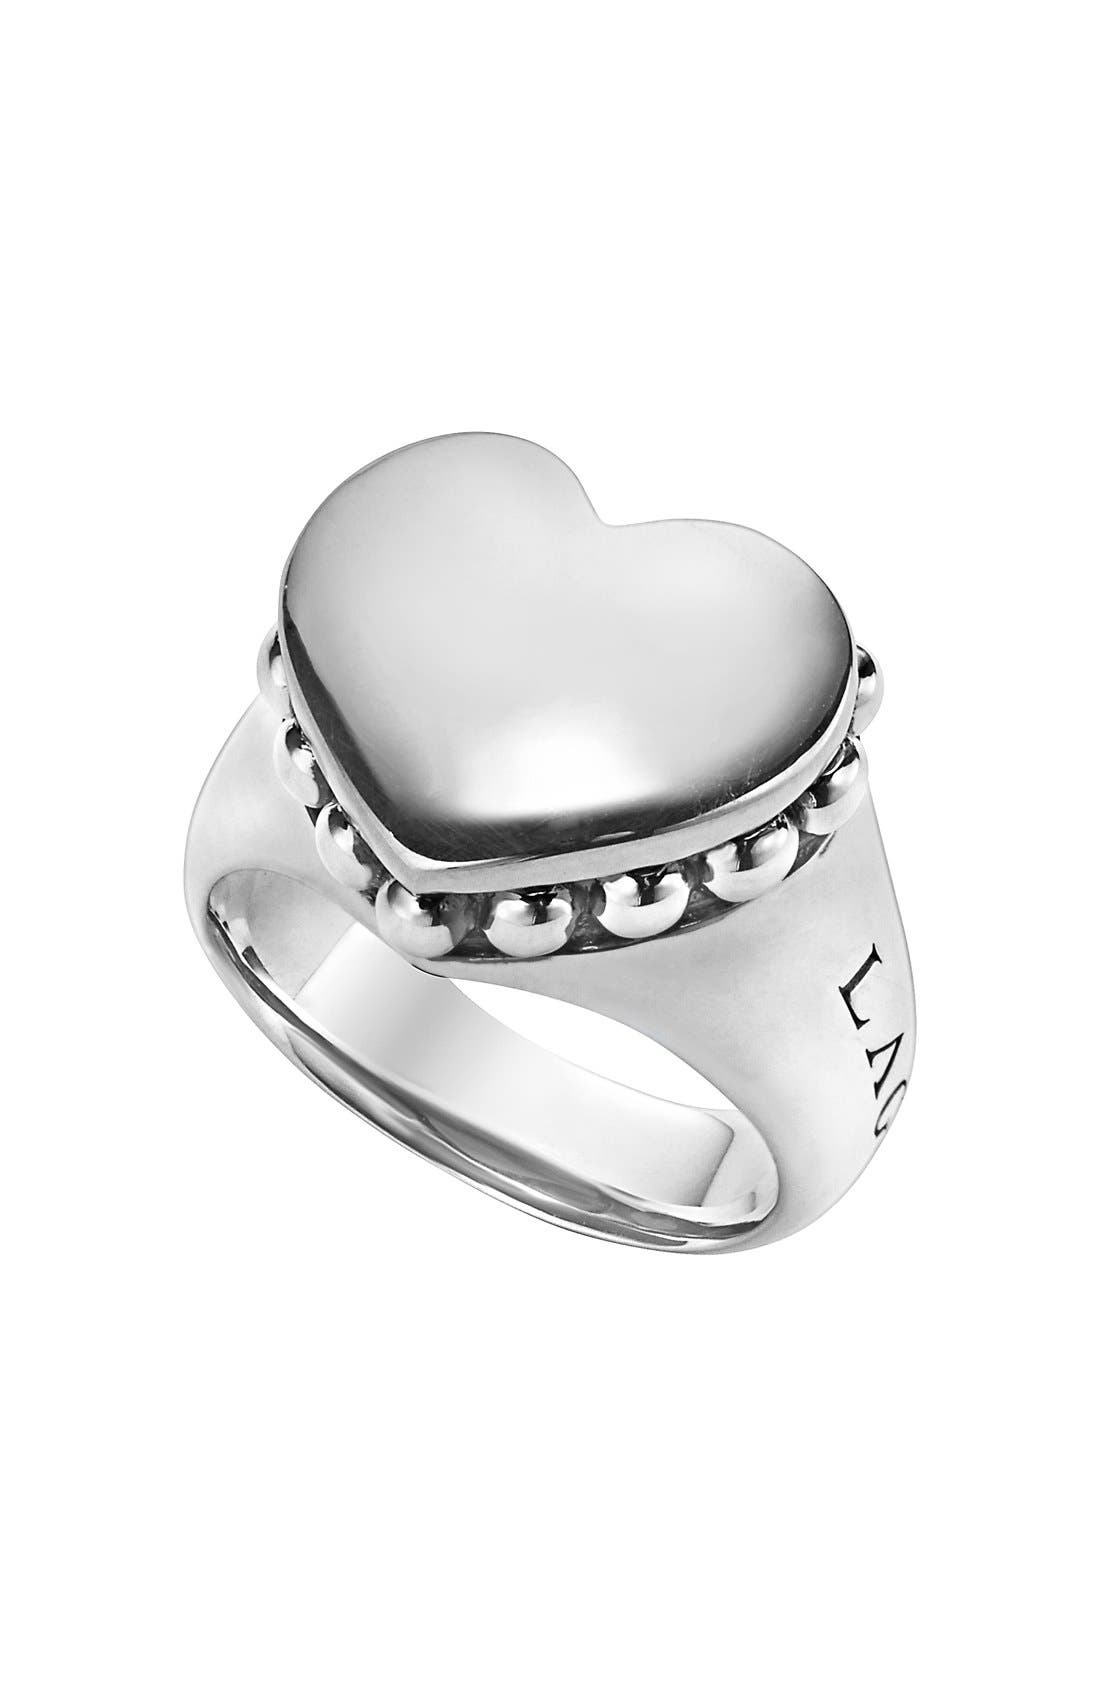 LAGOS 'Beloved' Large Heart Ring